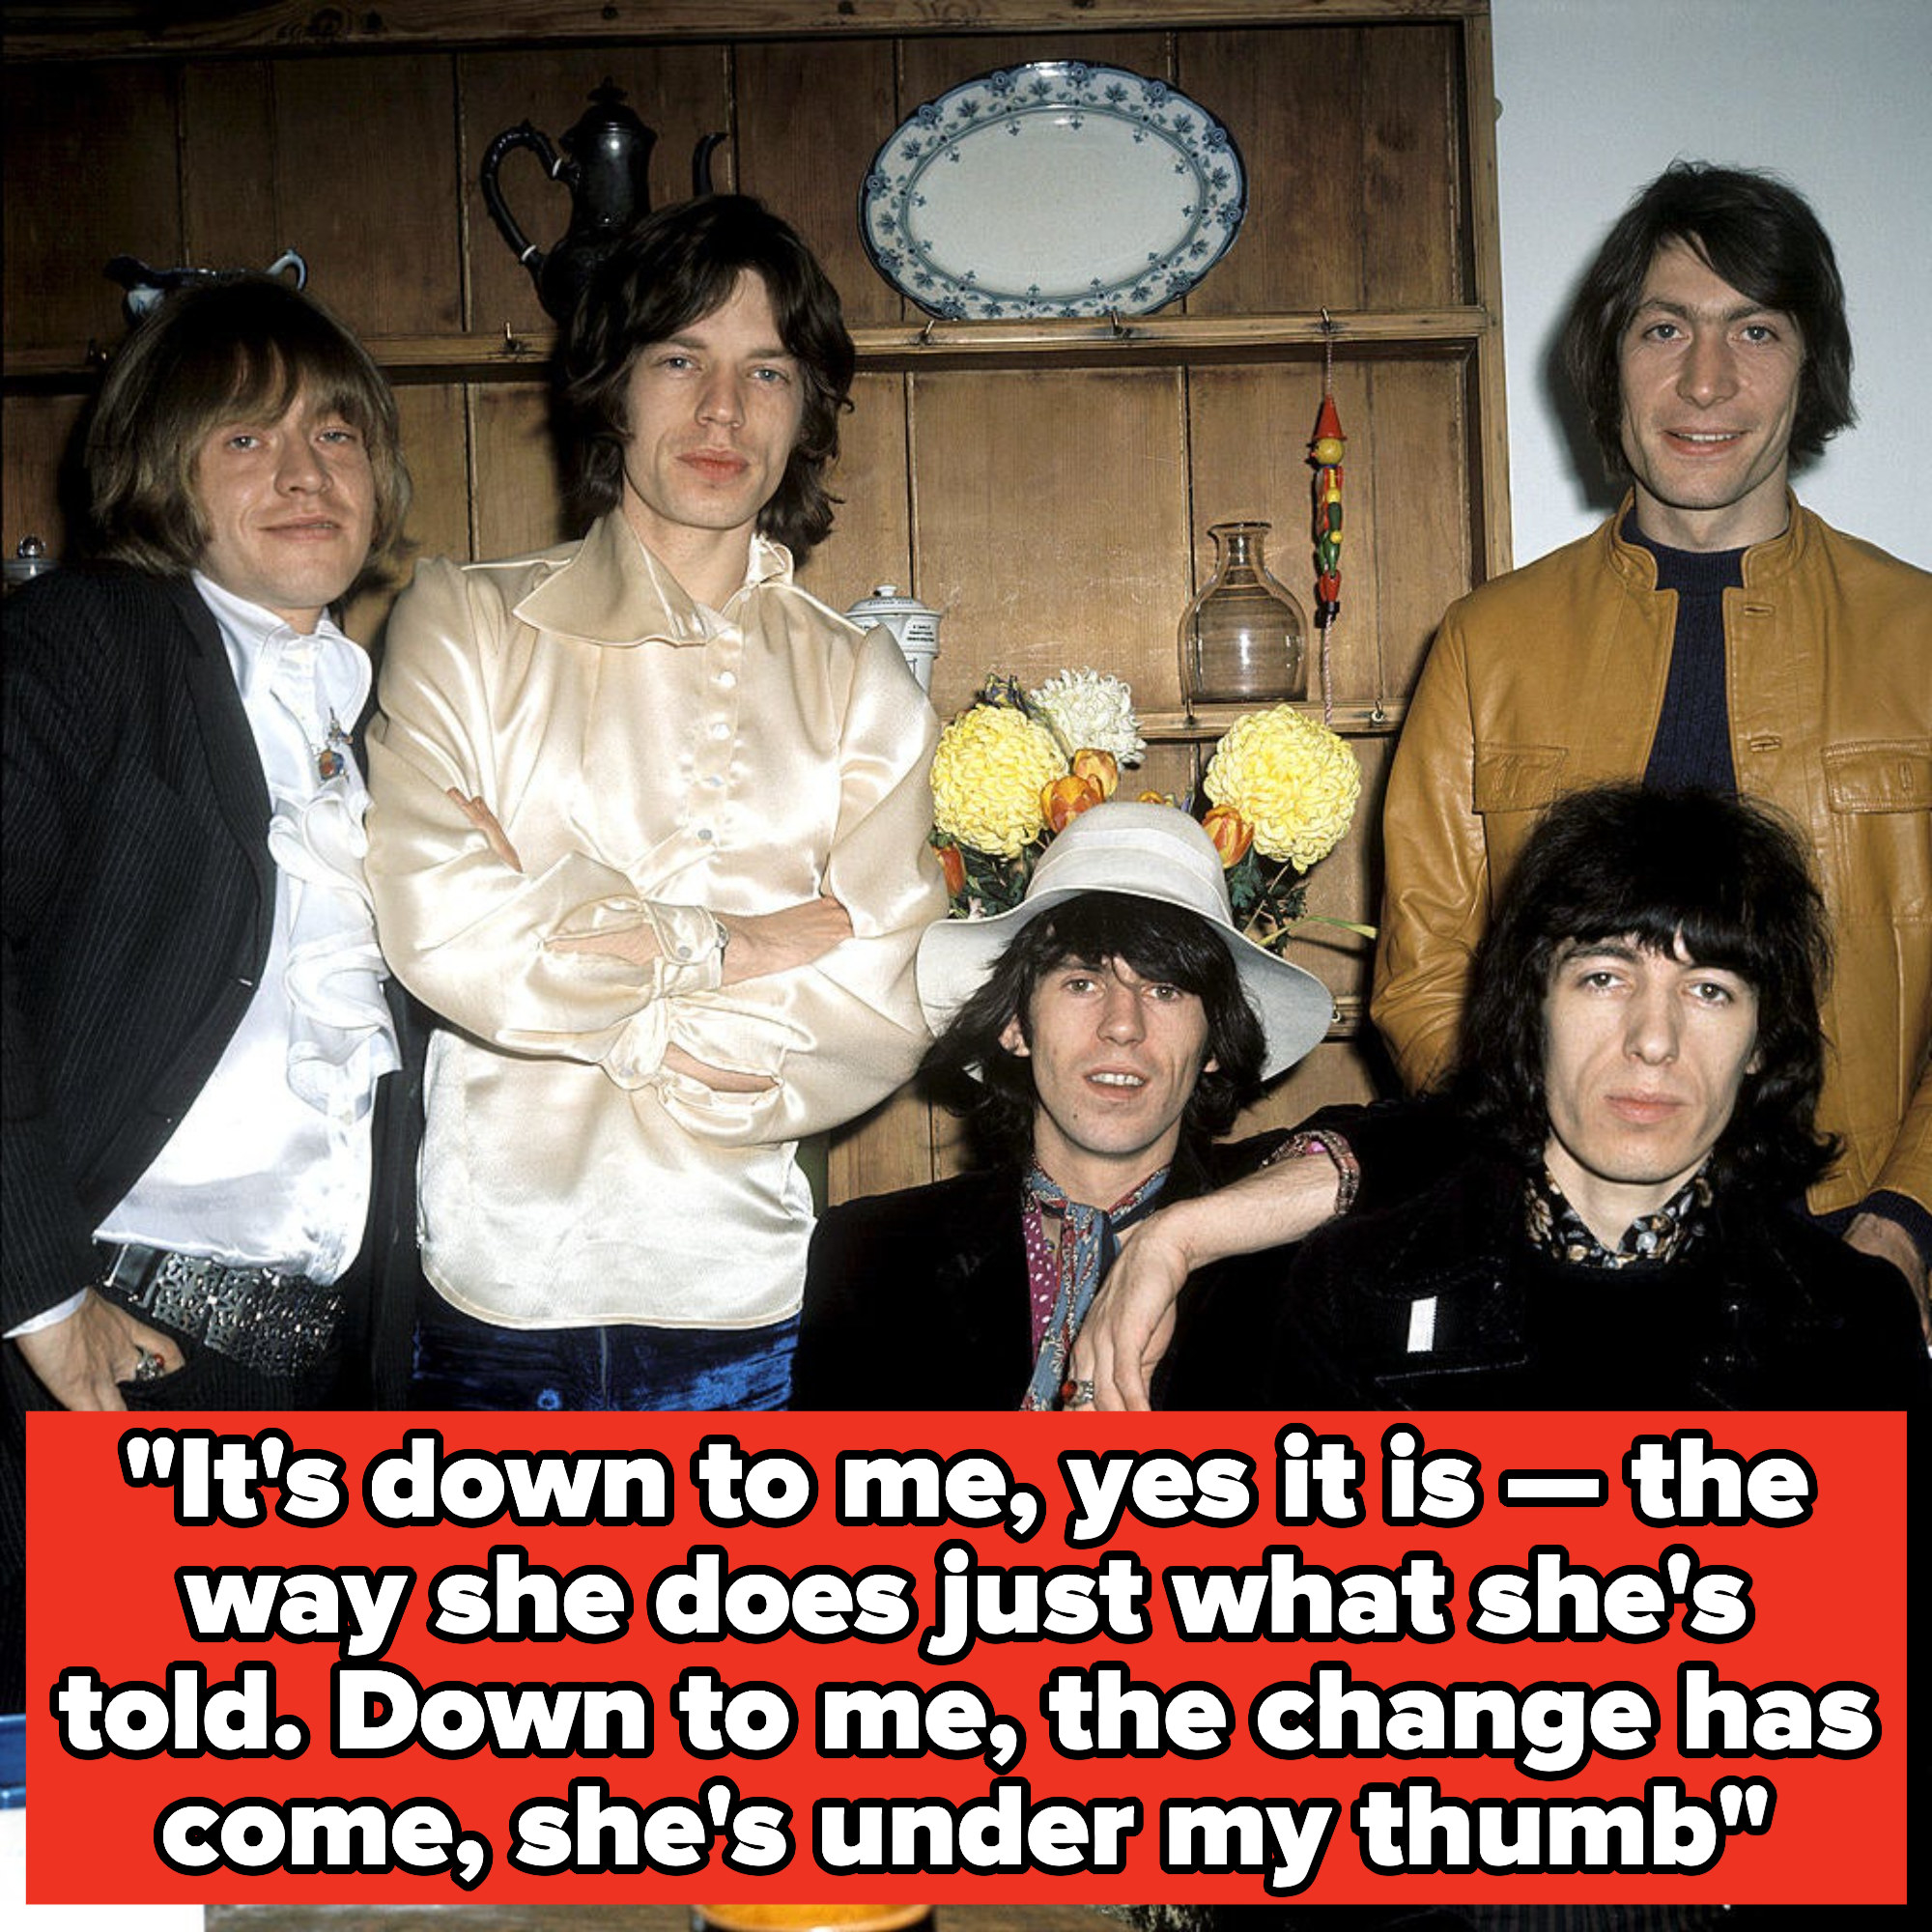 """Rolling Stones lyrics: """"It's down to me, yes it is -- the way she does just what she's told. Down to me, the change has come, she's under my thumb"""""""